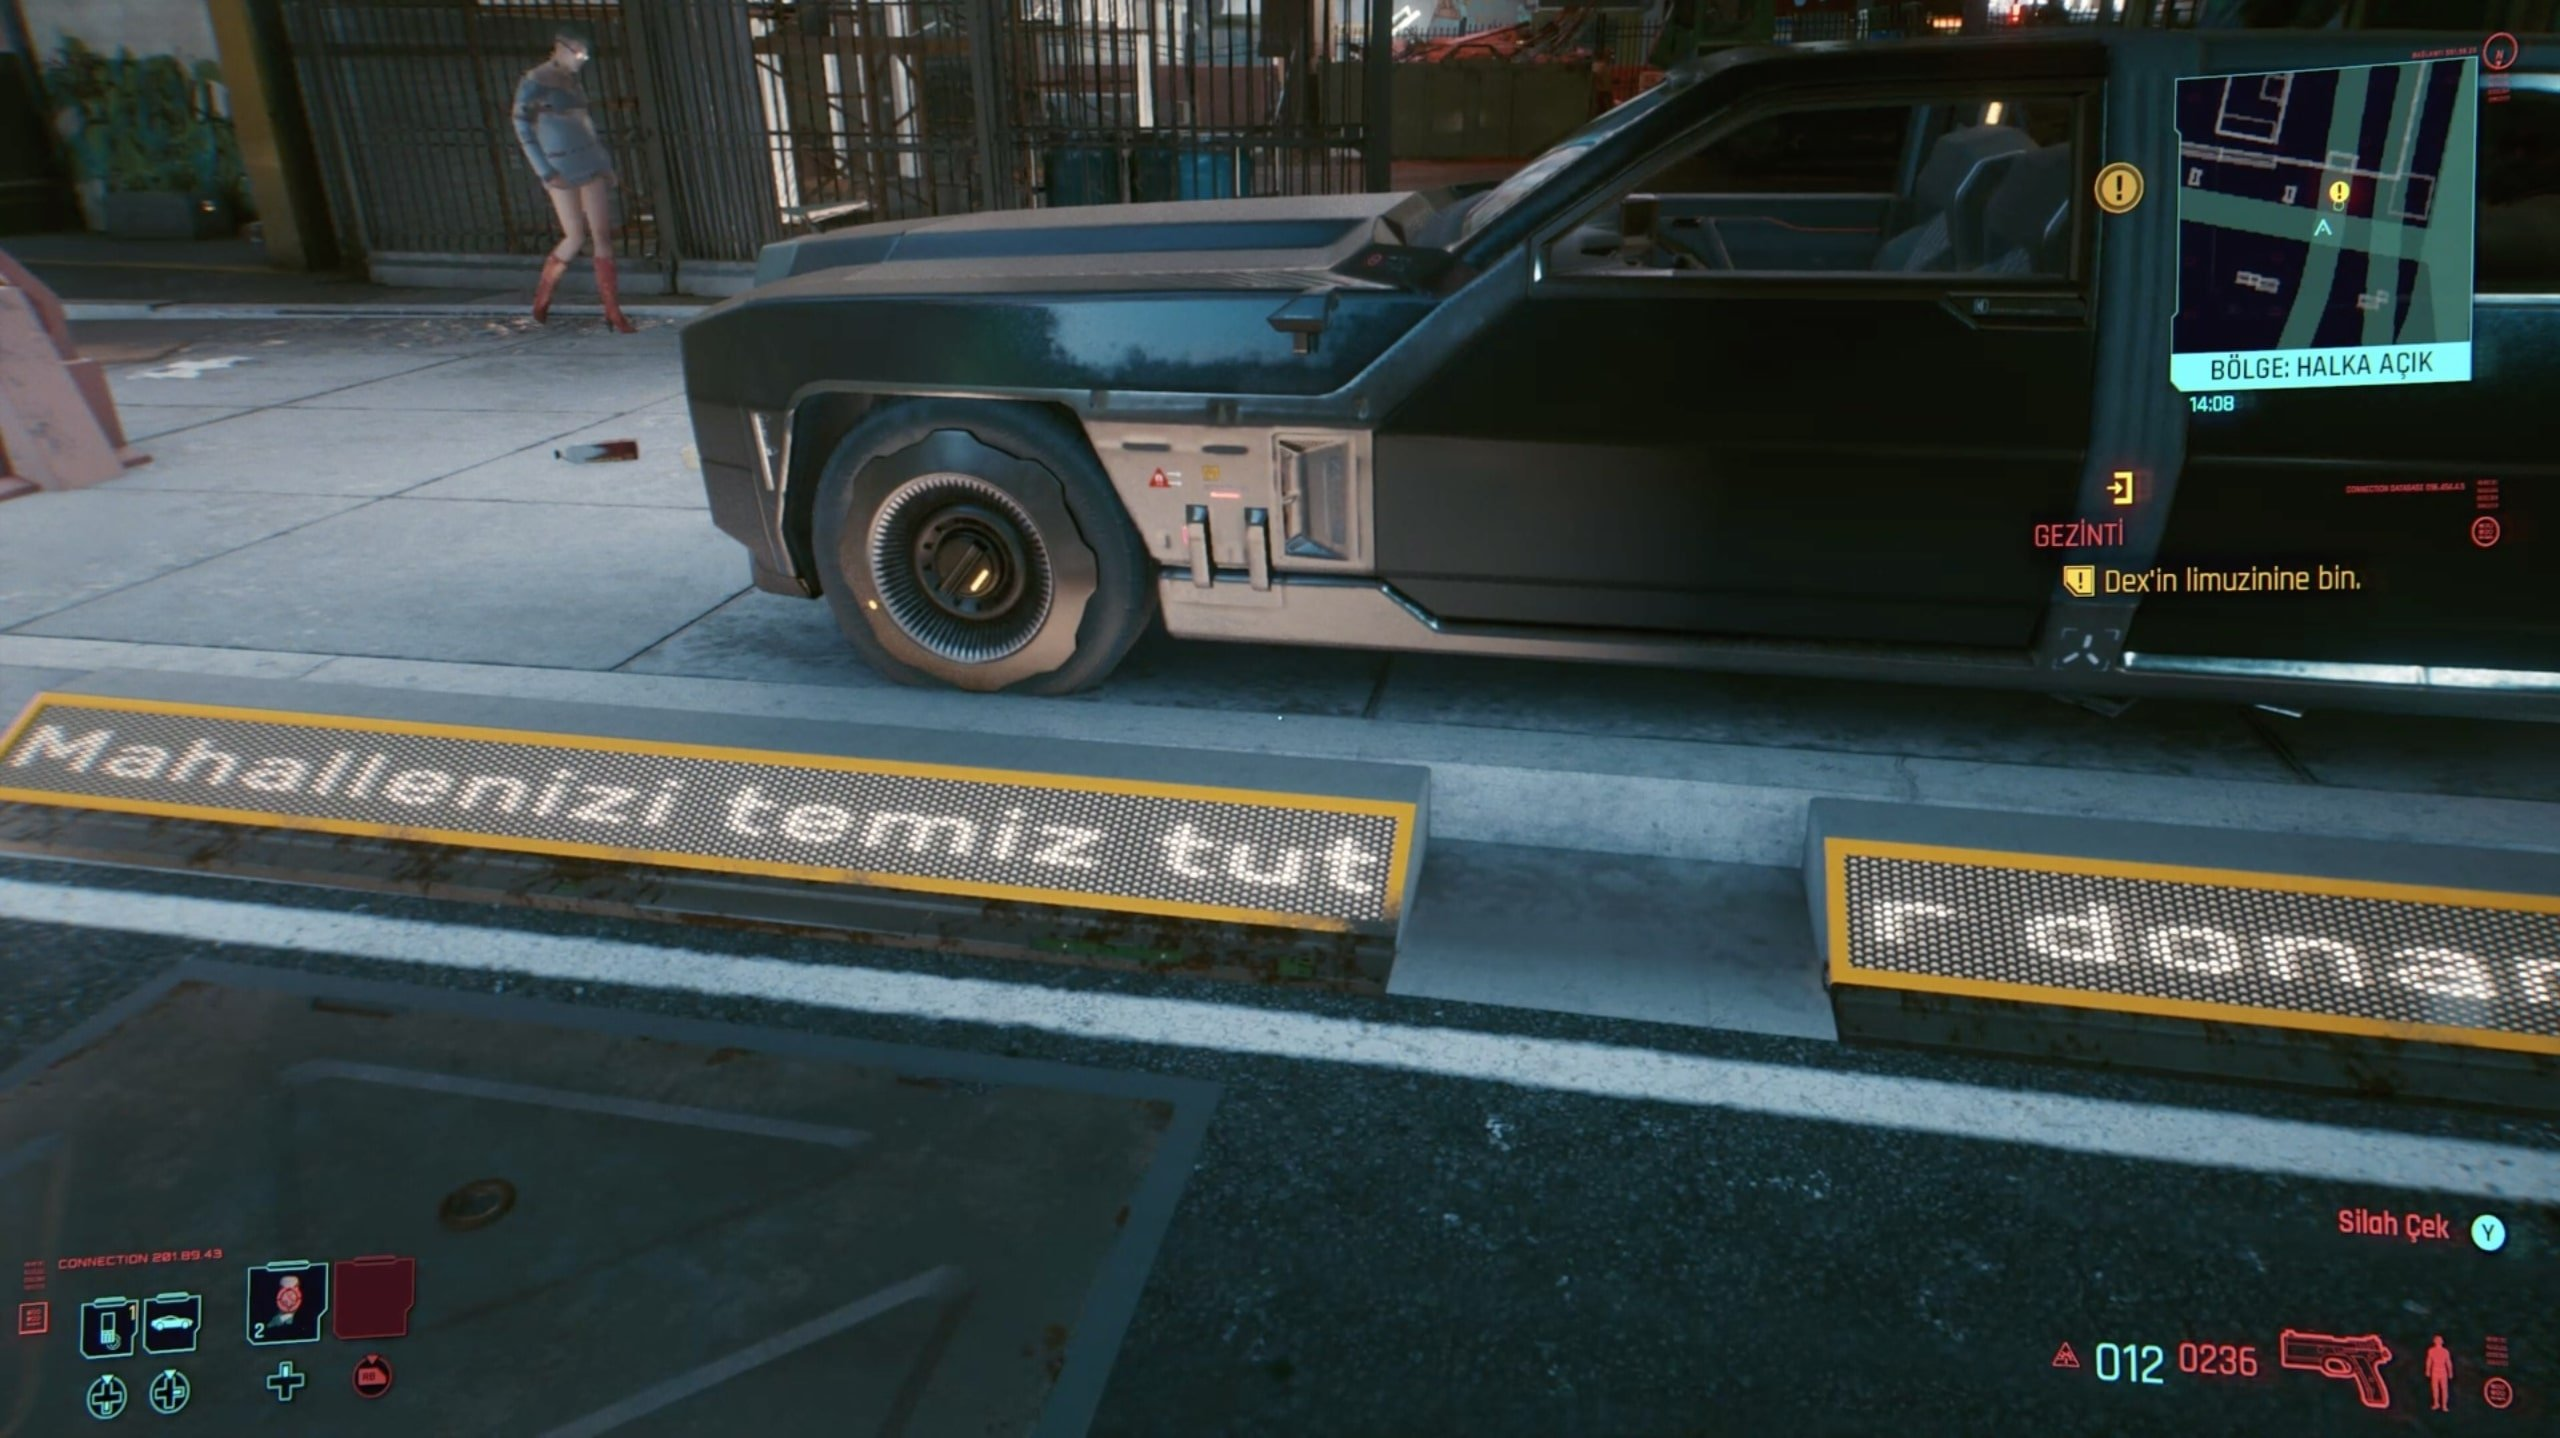 Even the electronic signs in the game have Turkish writing thanks to localization. (Screengrab from Cyberpunk 2077)